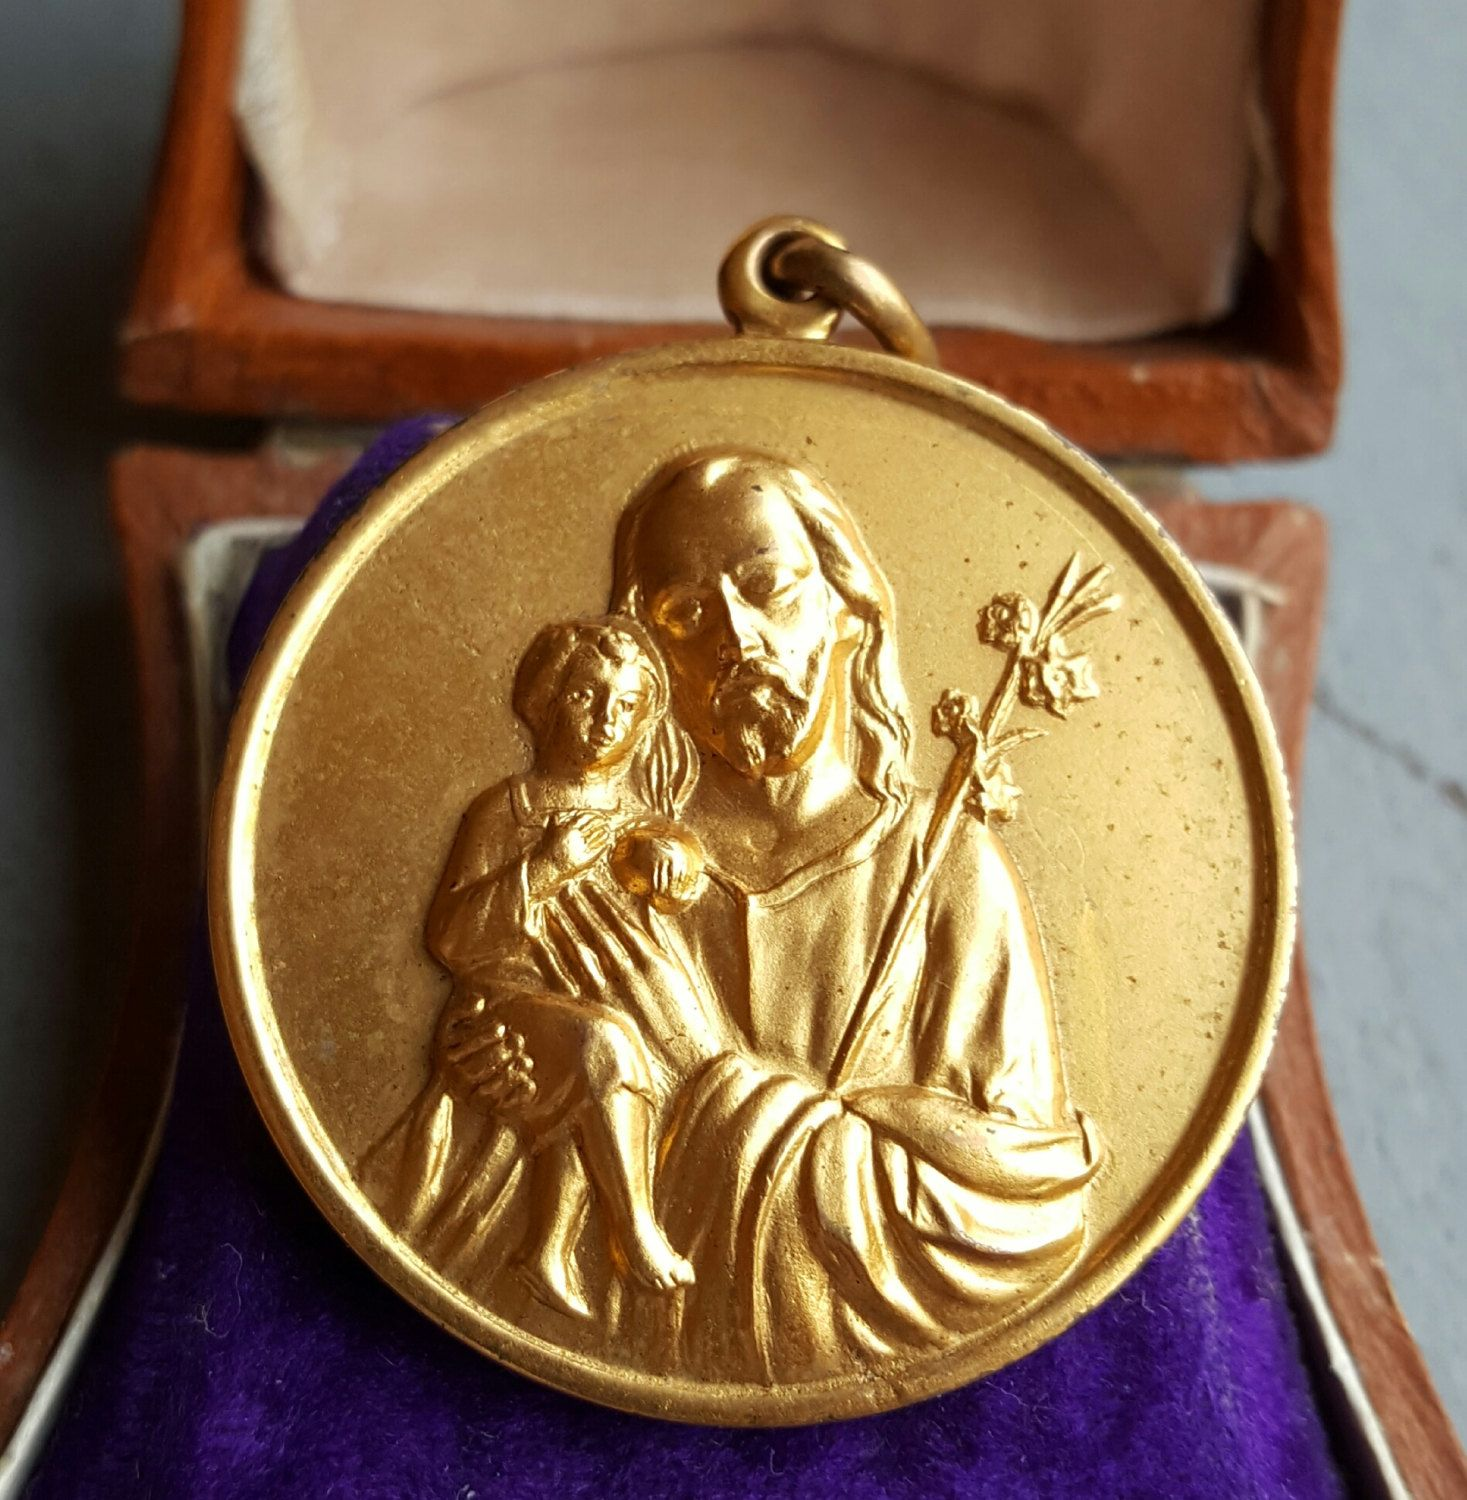 c7d734485f5 Vintage Spanish Saint Joseph Medal San Jose Medal 18K Gold Plated Baby  Jesus Art Nouveau Catholic Gift Religious Jewelry Catholic Jewelry by ...